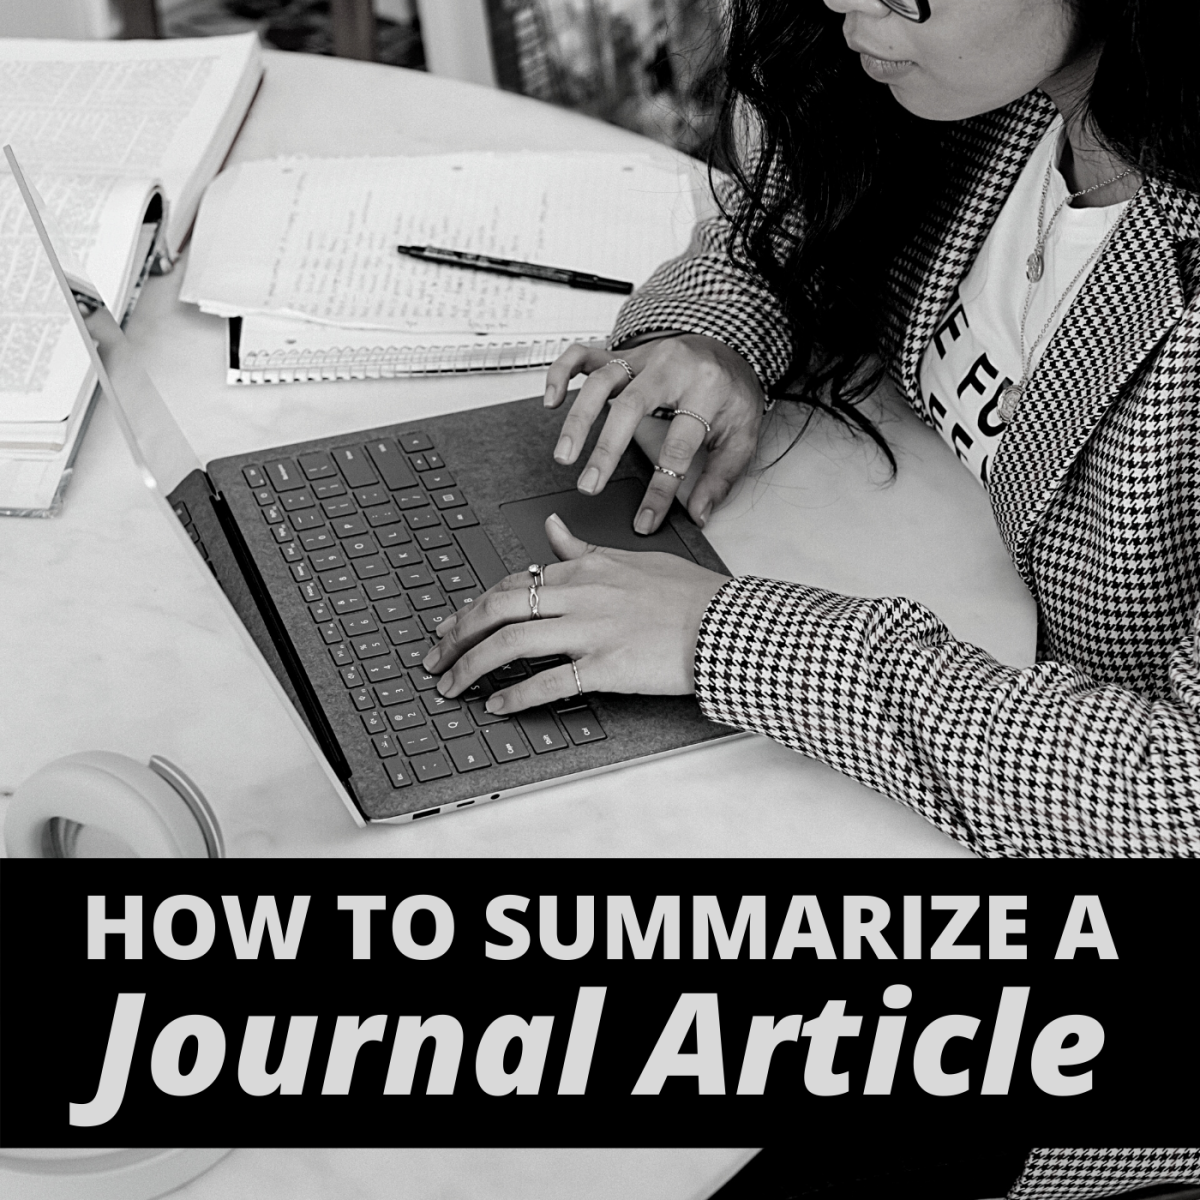 Writing a summary can help you better understand what you've read and how to use it as a source for your own work.